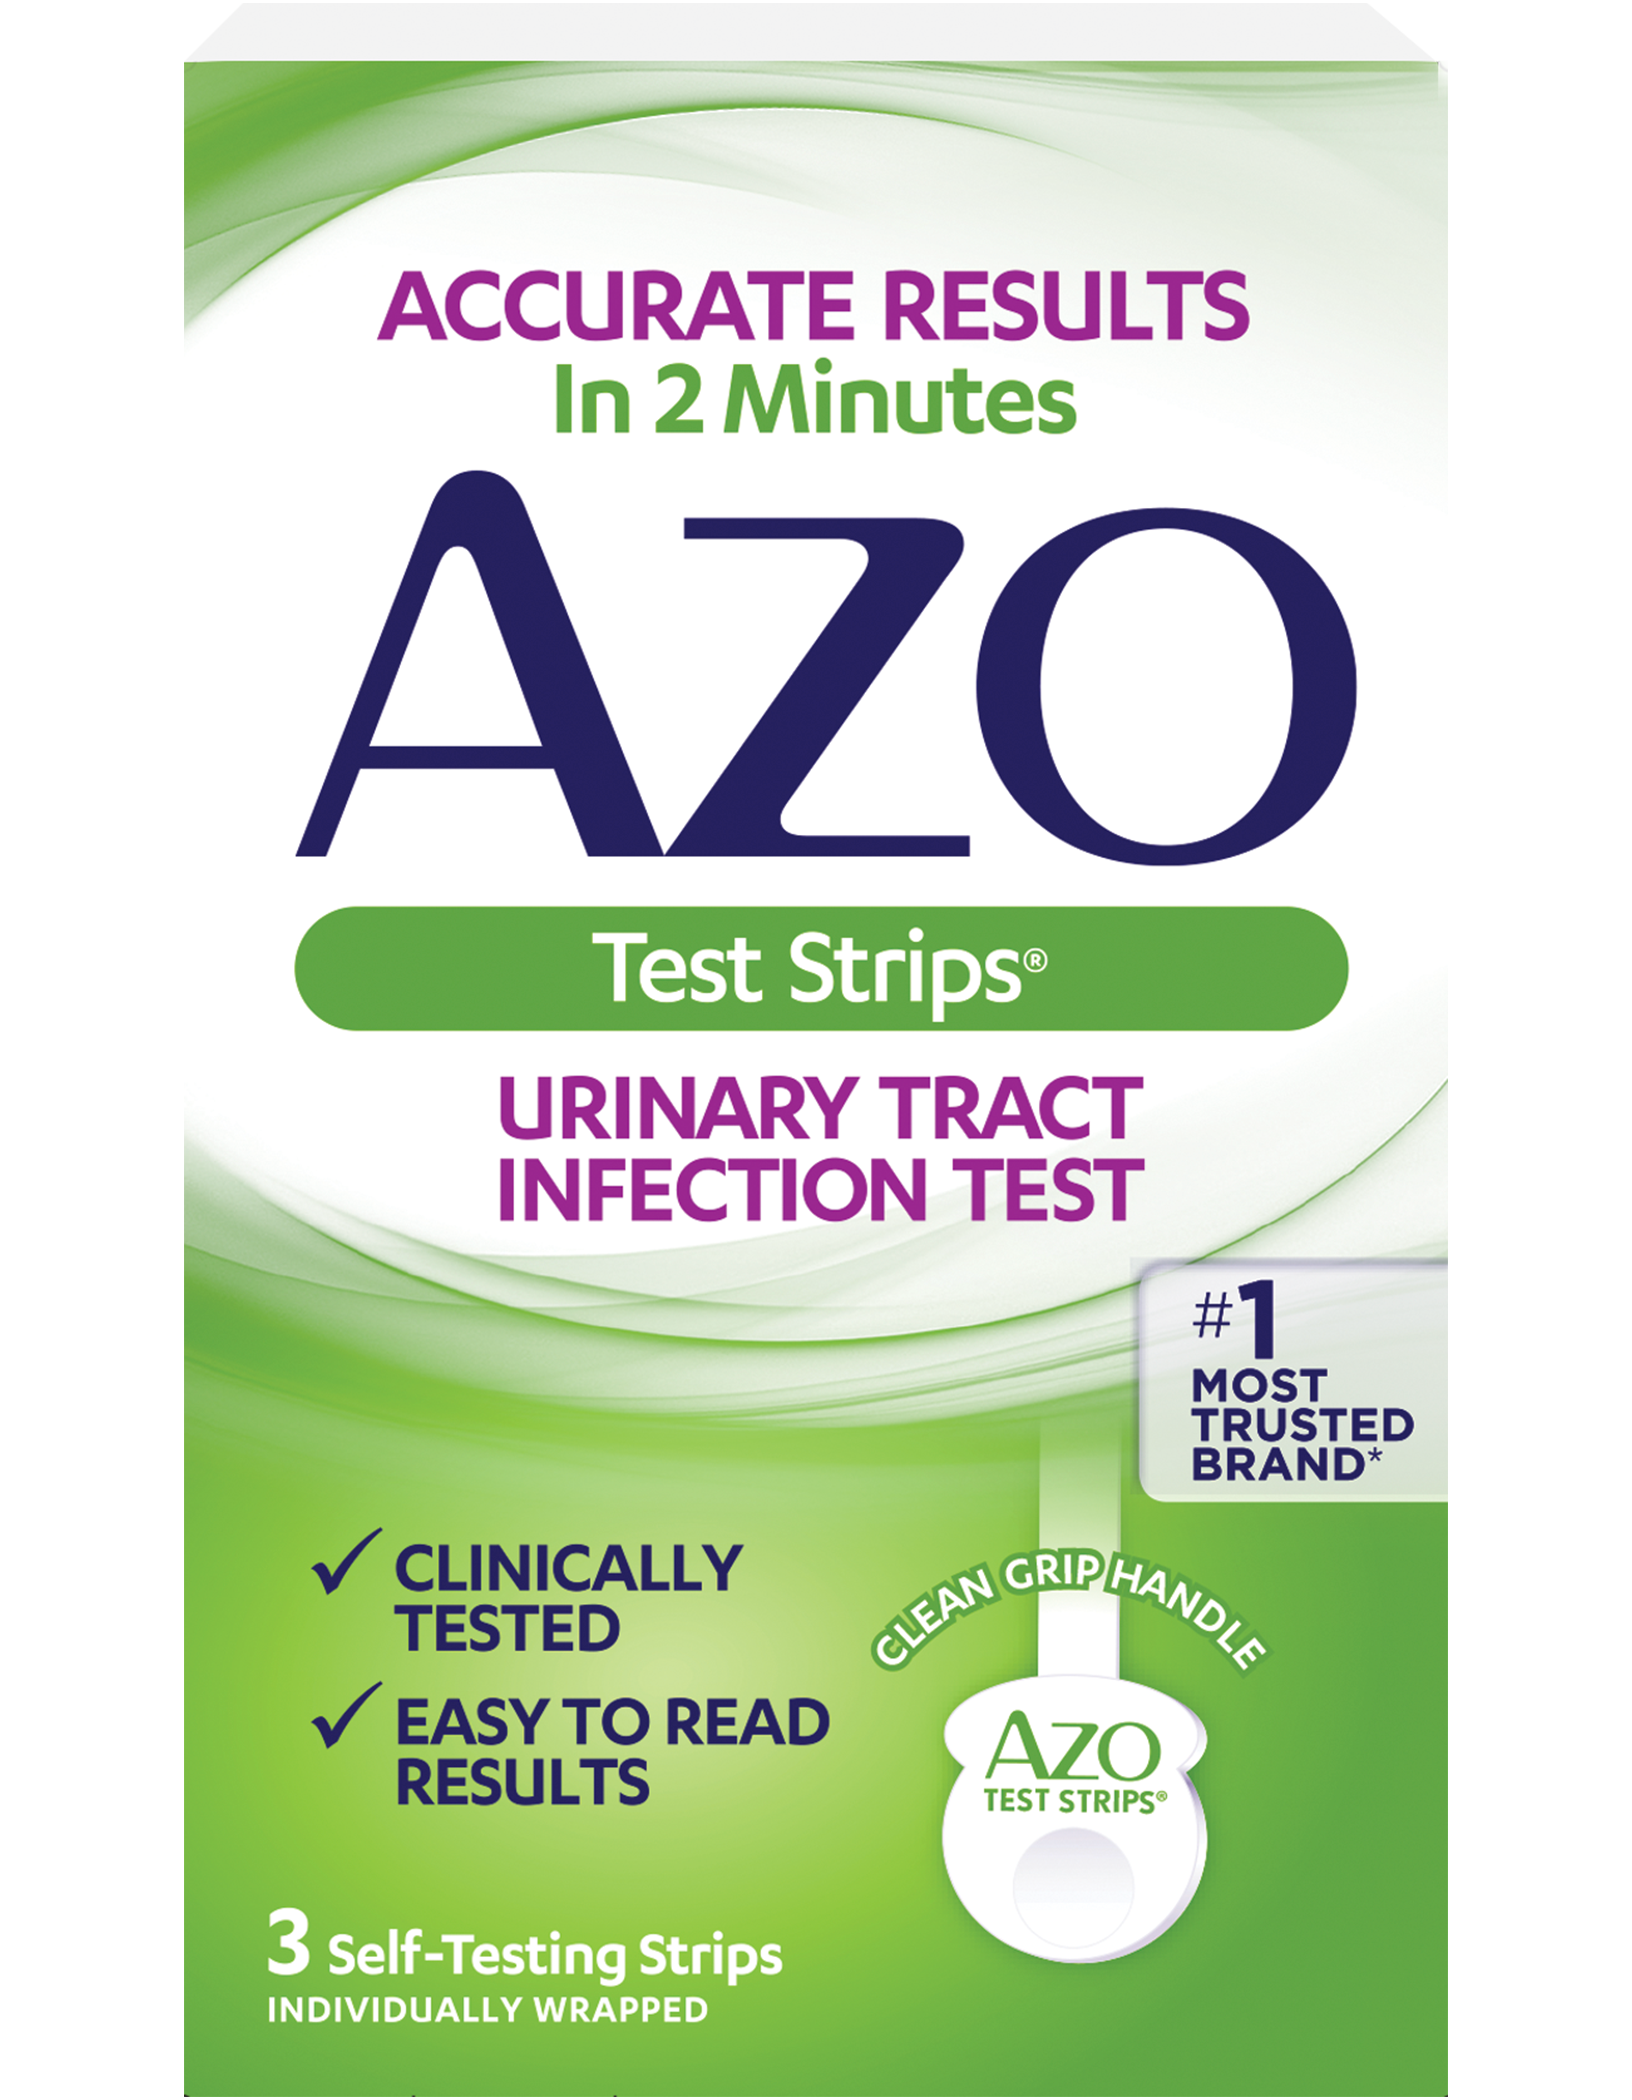 AZO Test Strips® Help You Detect If You Have a UTI